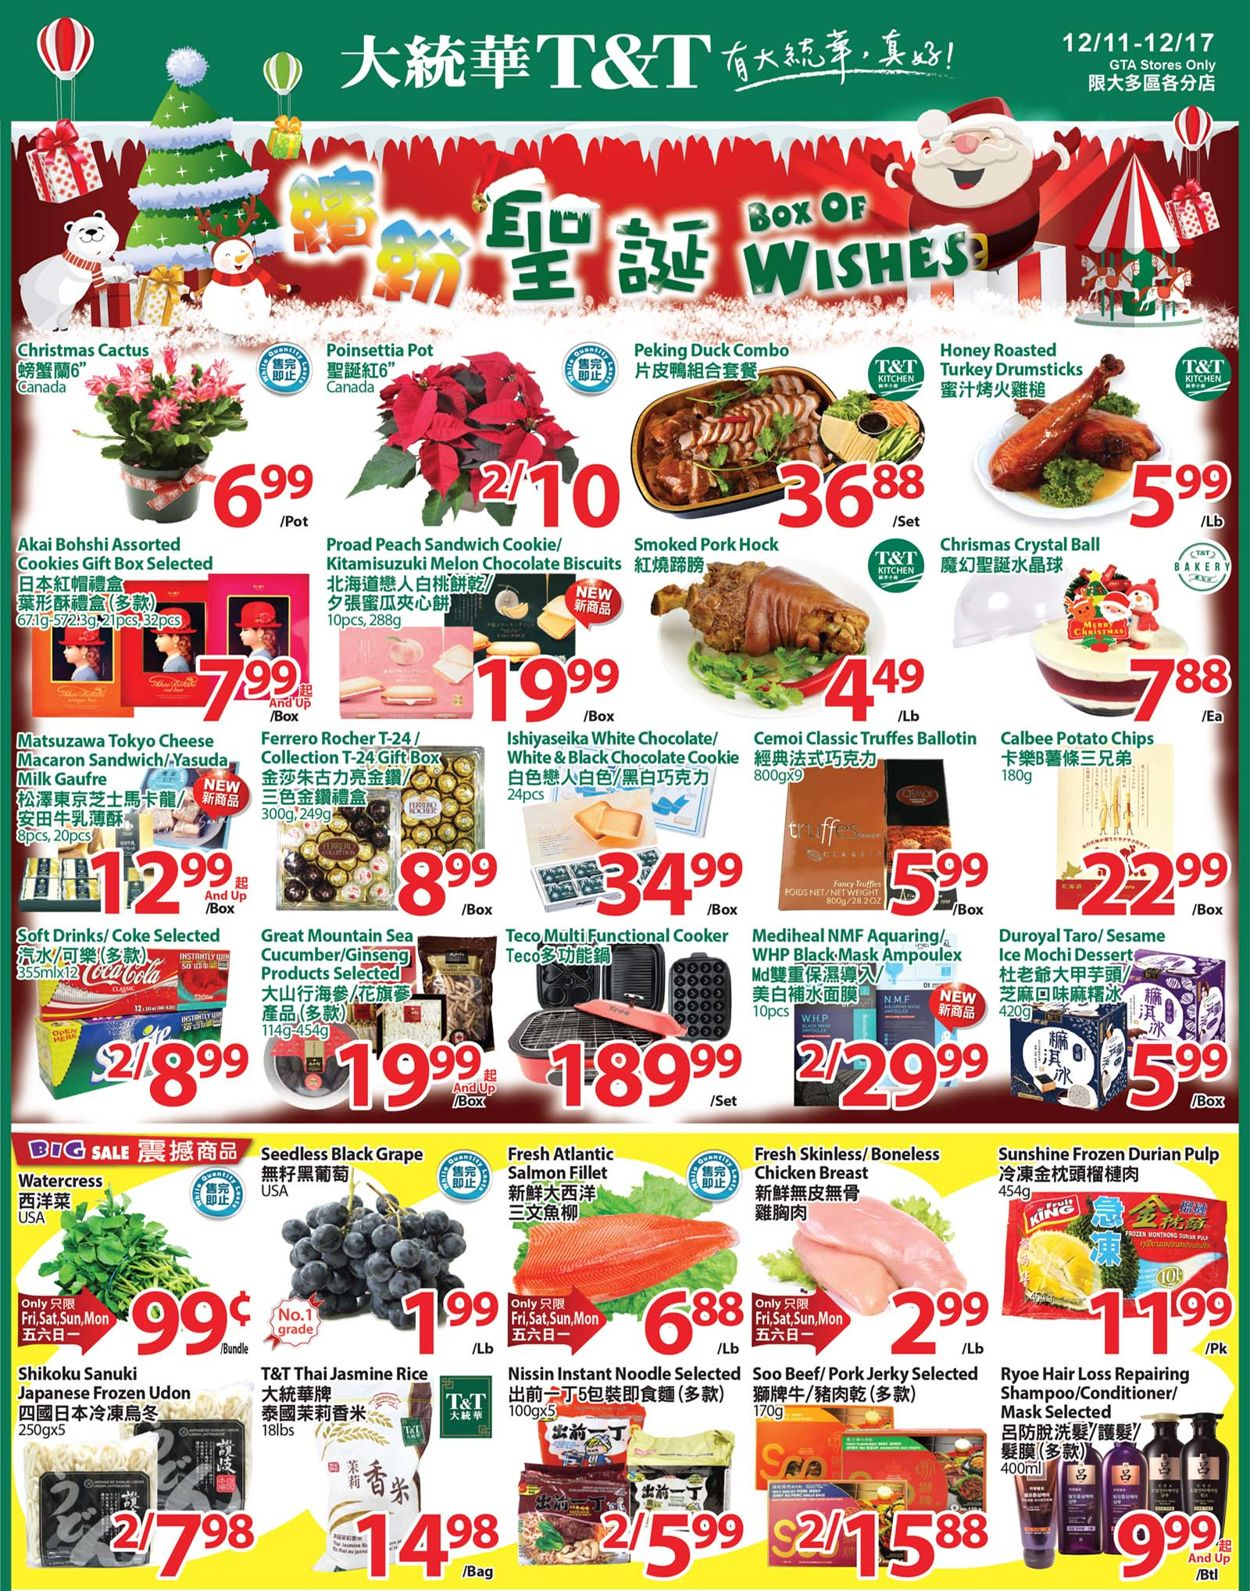 T&T Supermarket Christmas 2020 - Greater Toronto Area Flyer - 12/11-12/17/2020